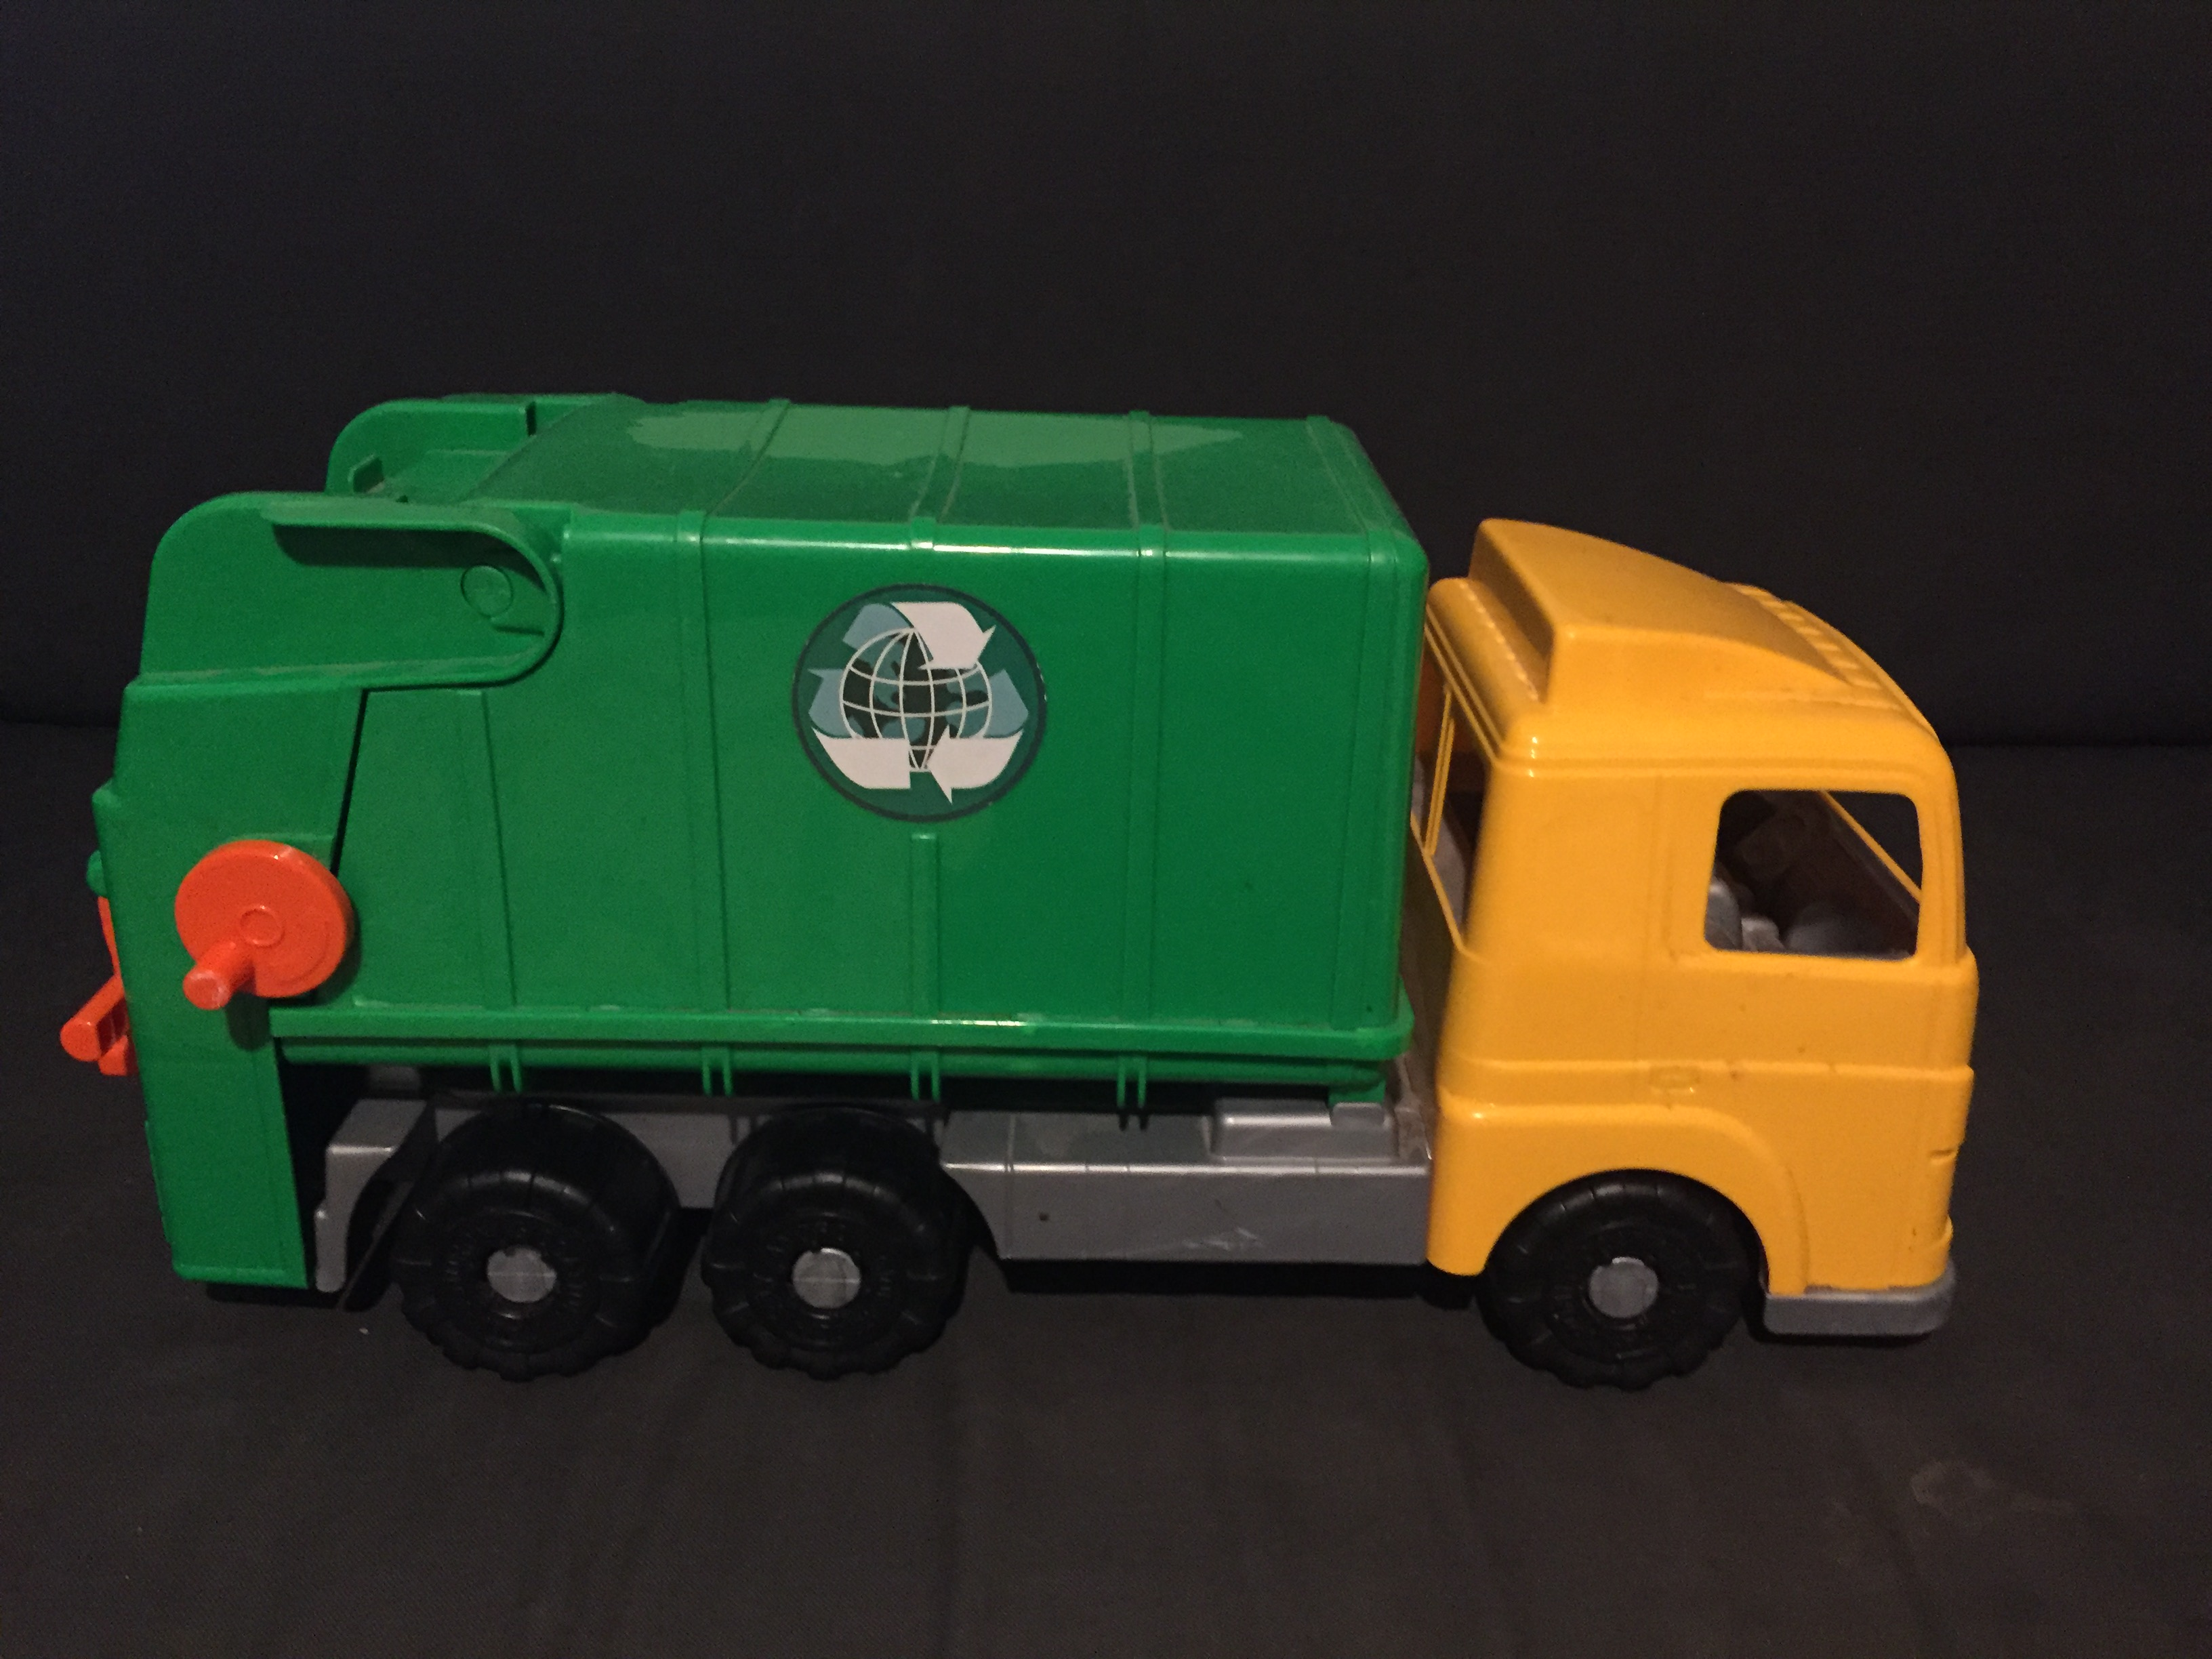 Androni Giacattoli Ecological Garbage Truck toy green recycling truck with yellow cab vehicle kids